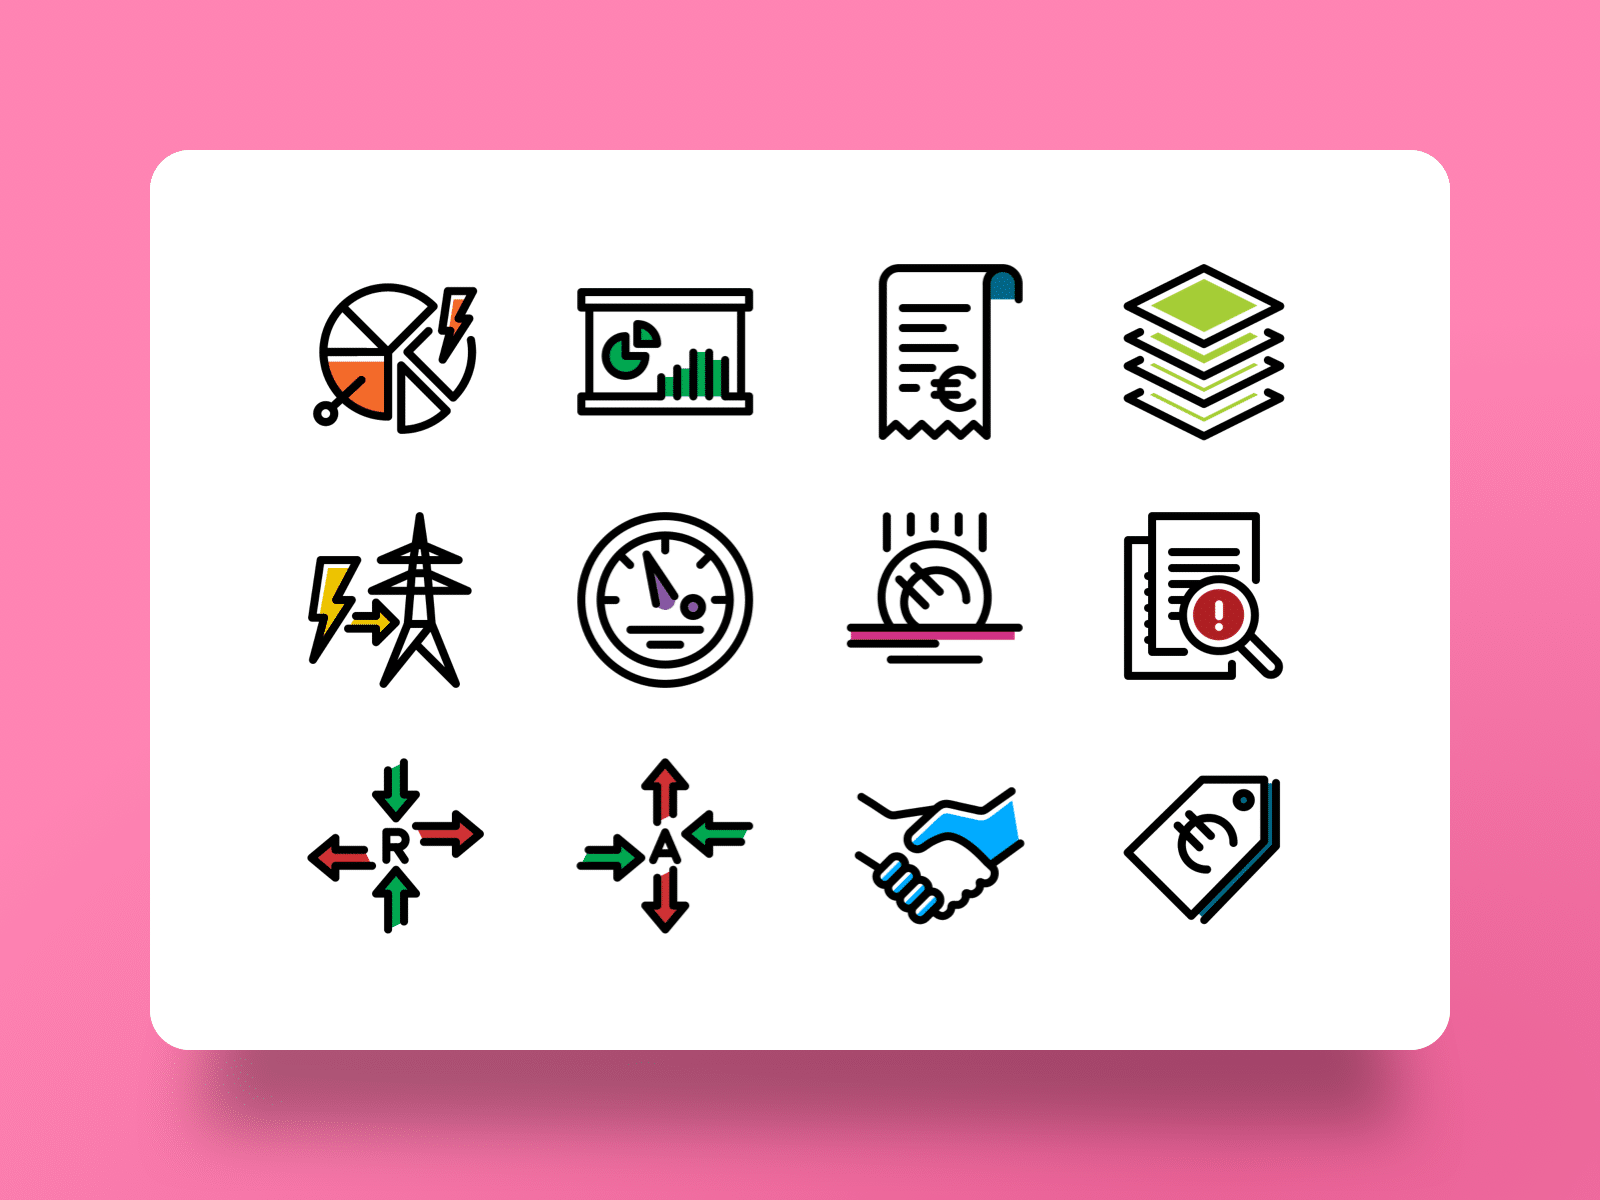 Icon designs, created for Atrias, showing different business concepts for the energy market.